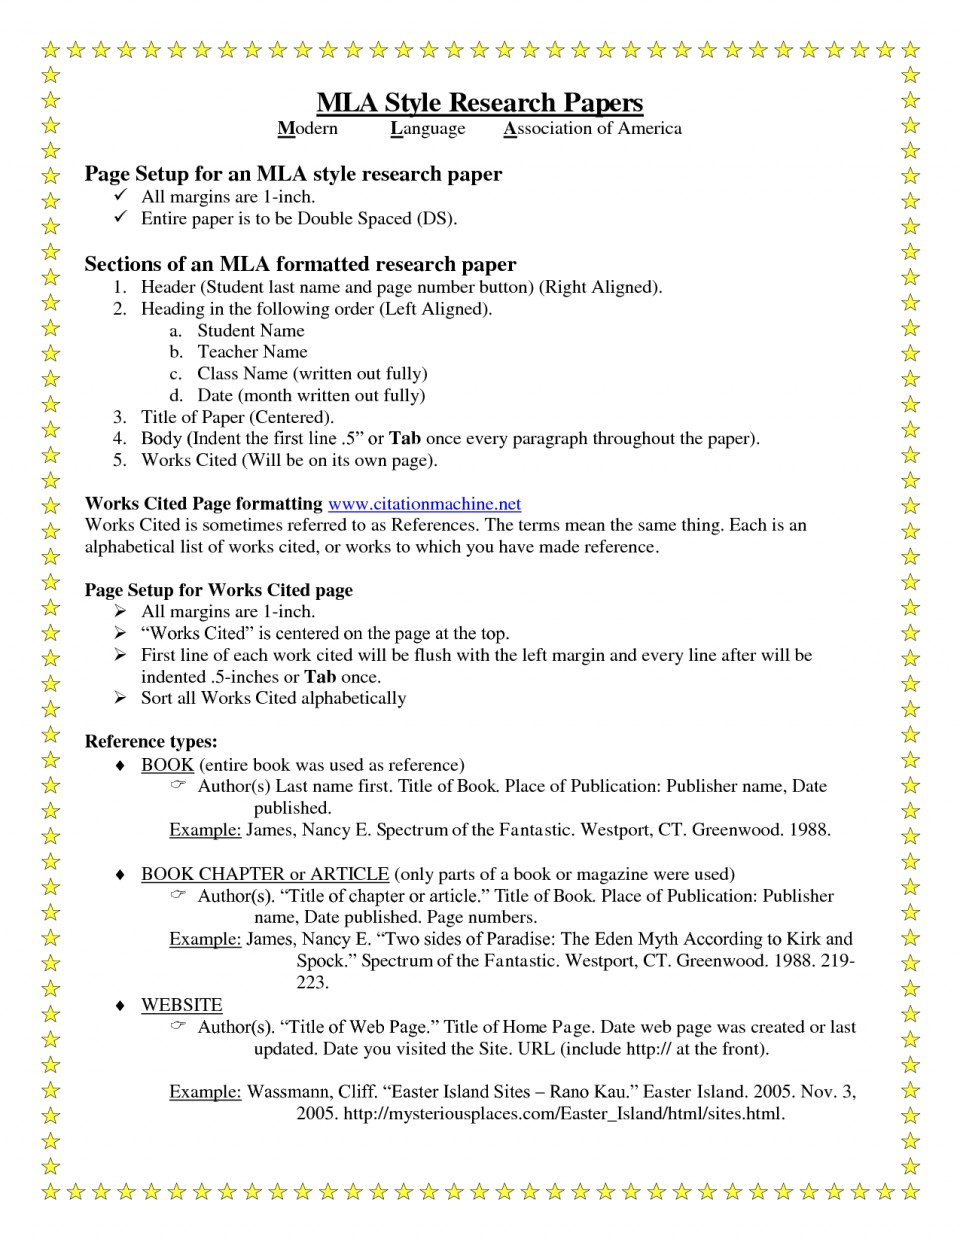 004 Research Paper Order Of Mla Headings Beautiful A Example Proposal In Format Examples Sample 960